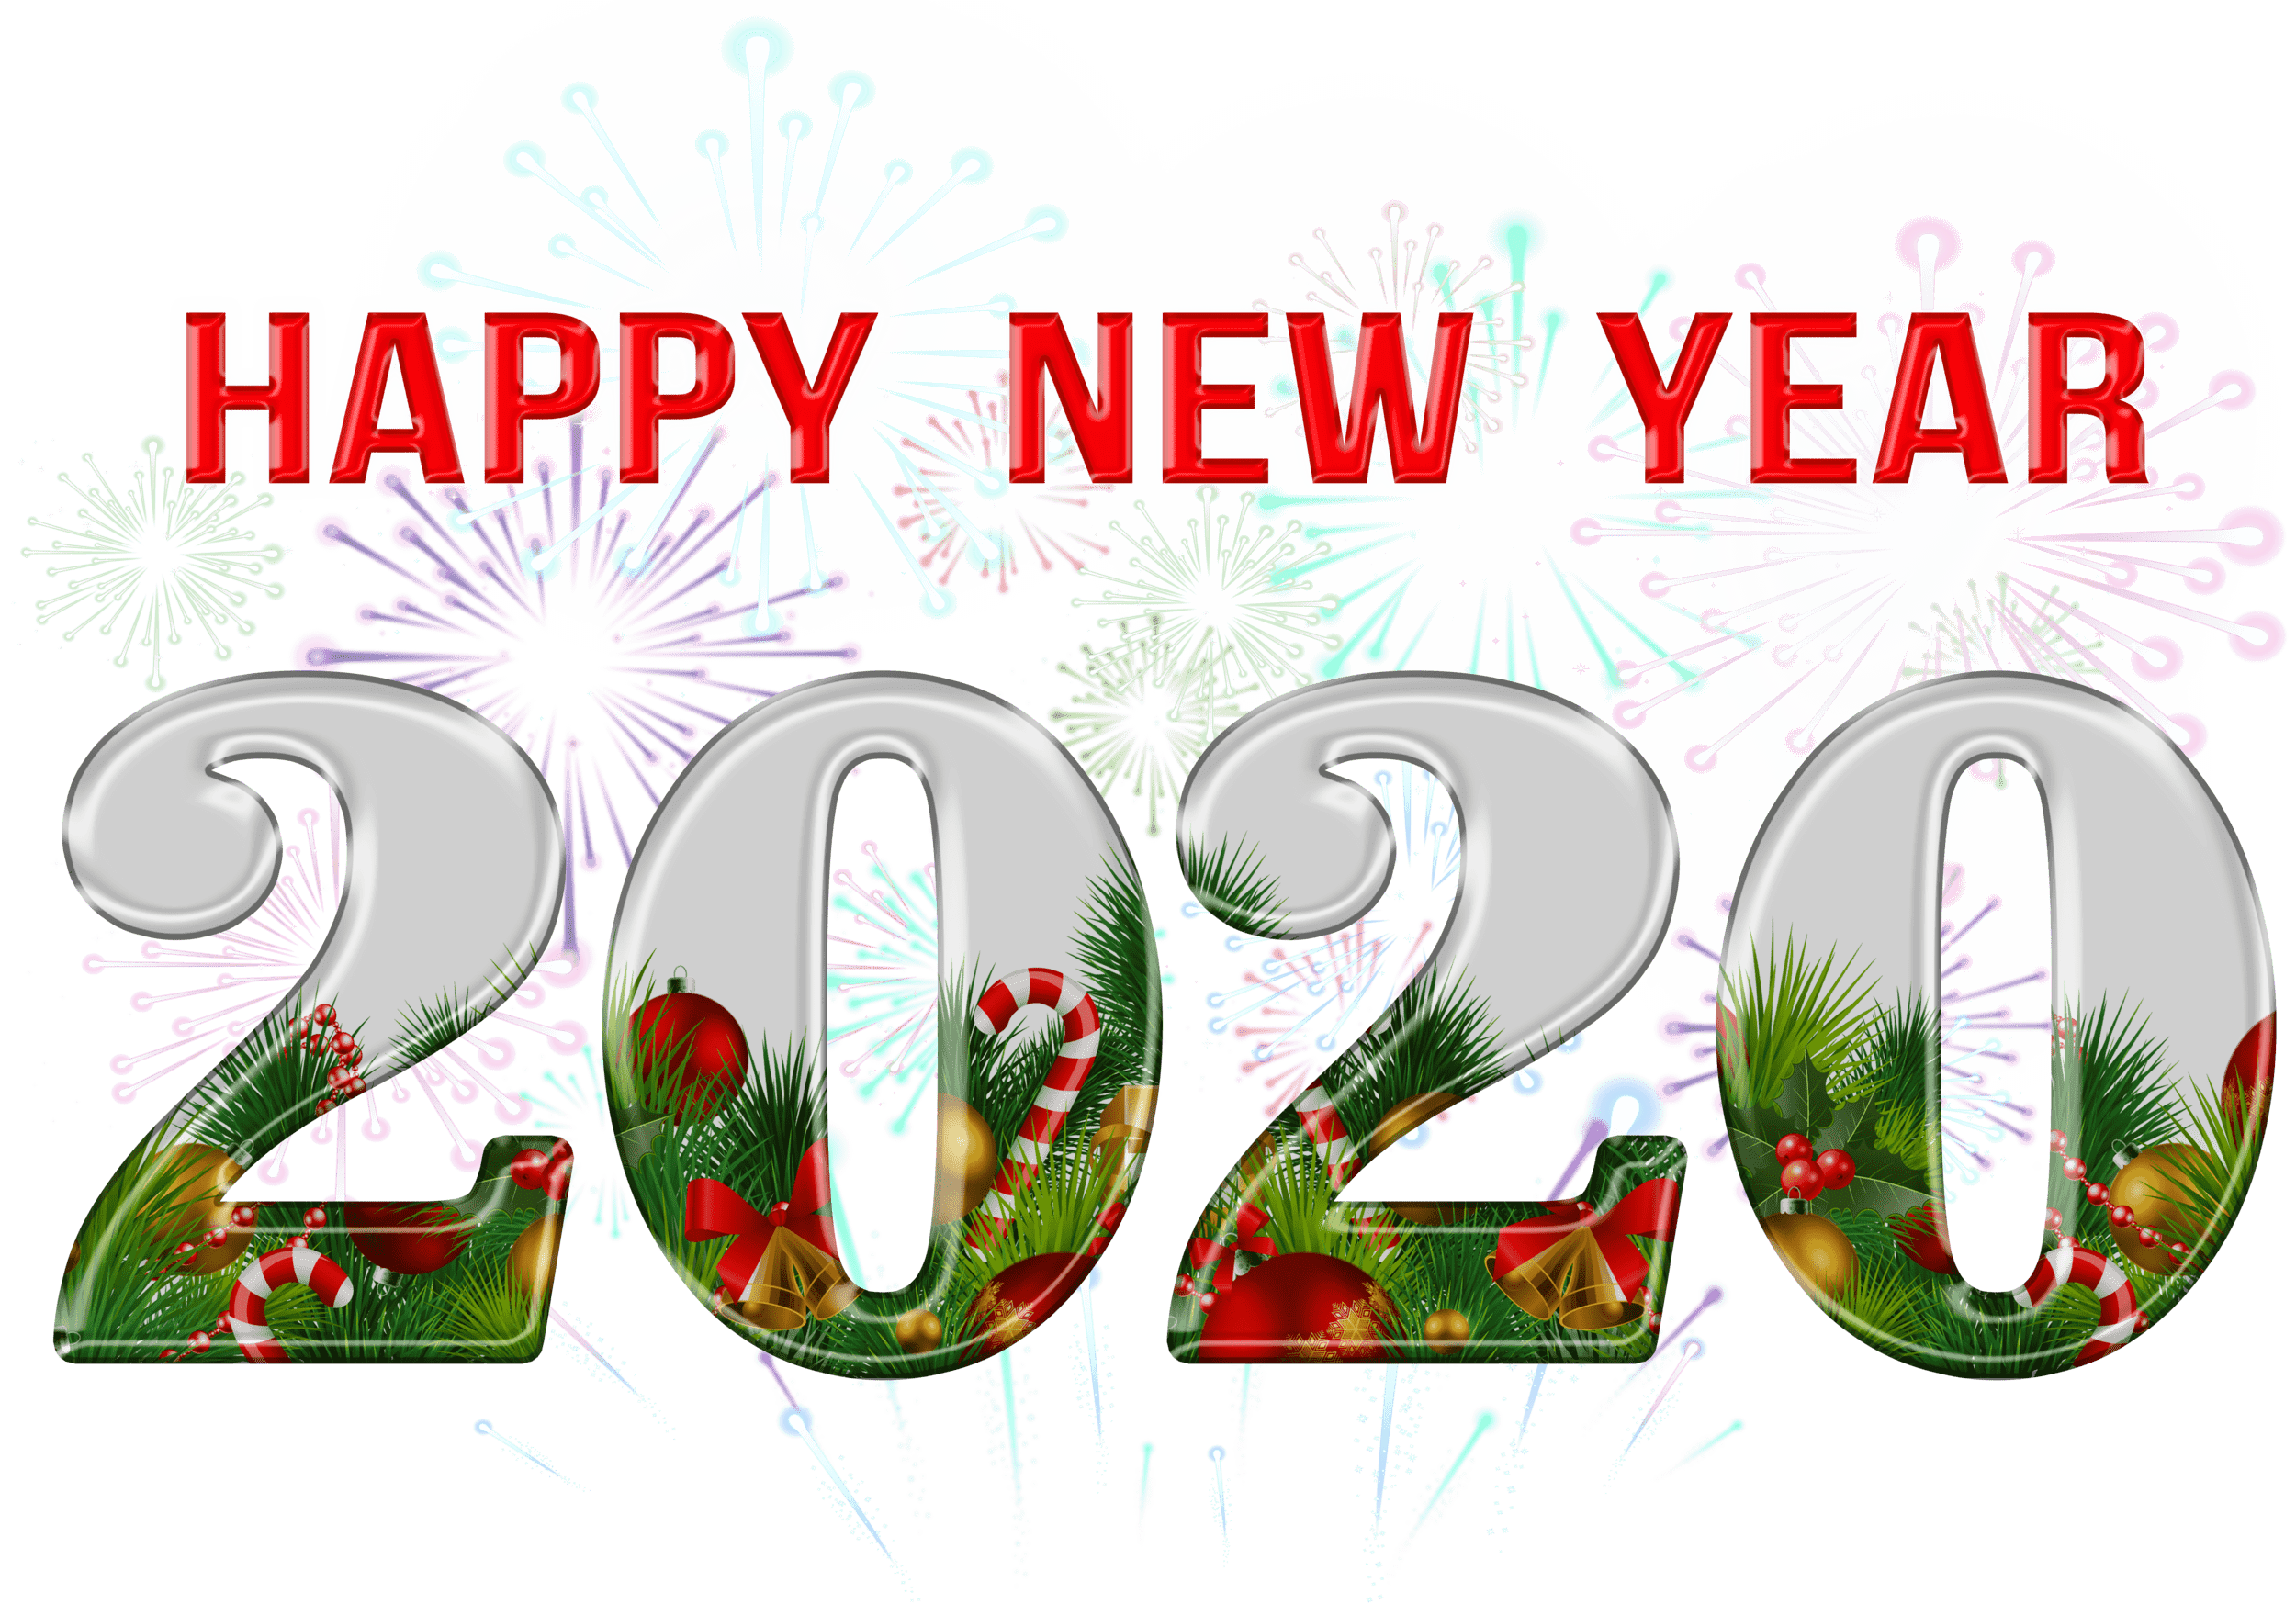 Happy New Year Clipart 2020.Happy New Year 2020 Png Clipart